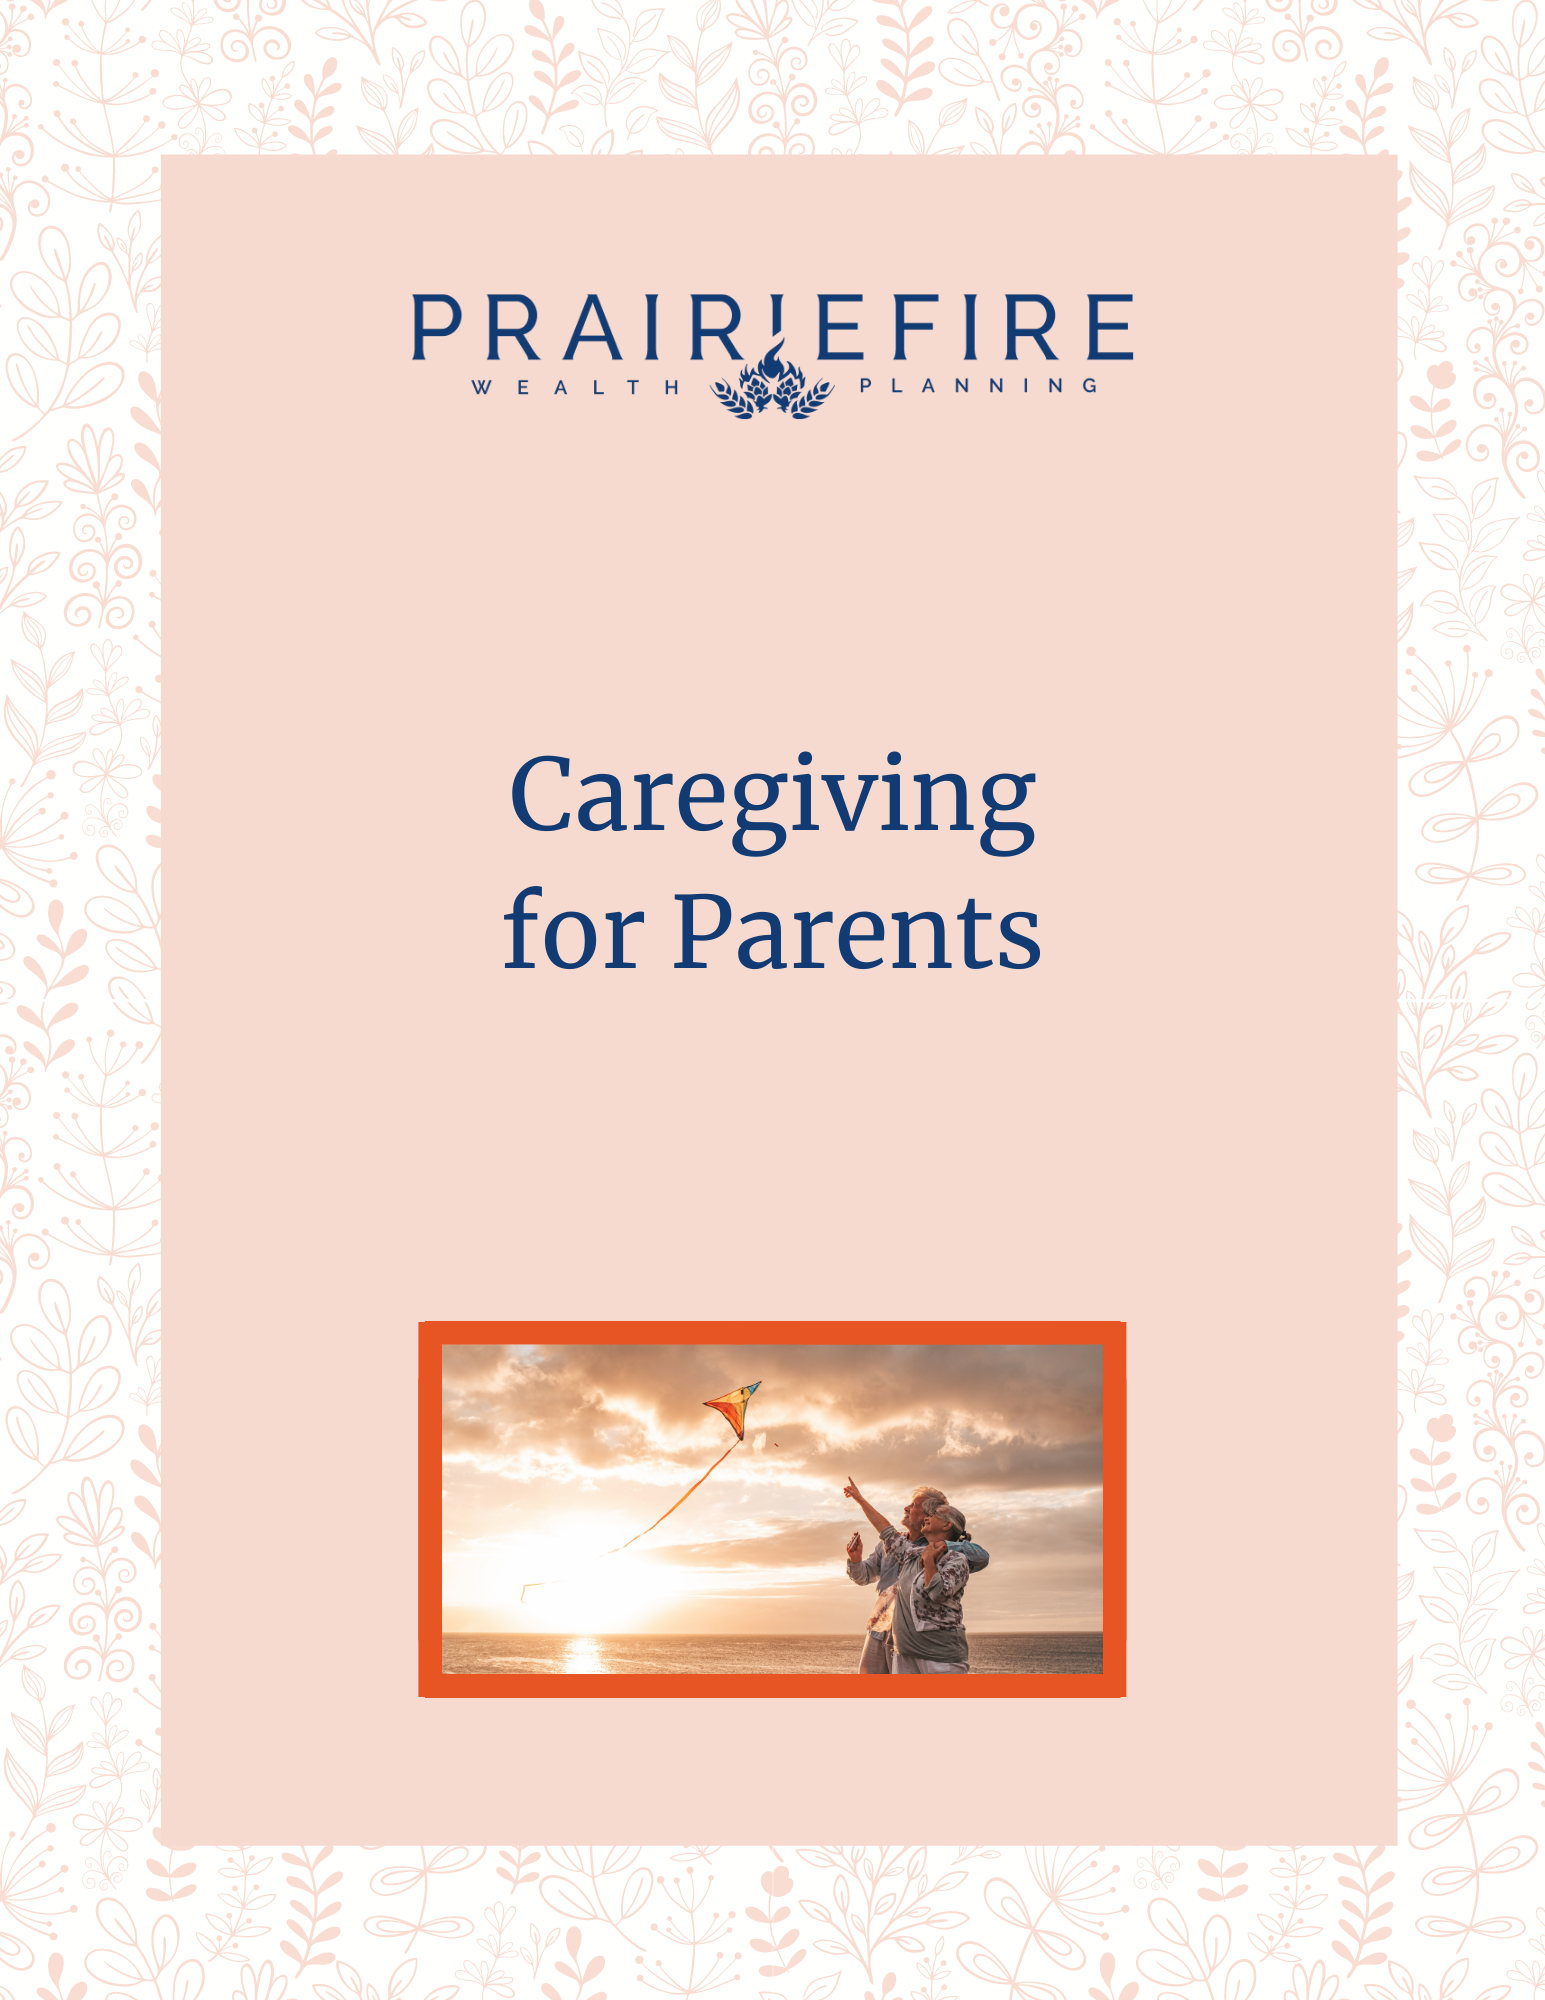 PrairieFire's Top 5 Ways to Prepare for Your Kids to Leave the Nest